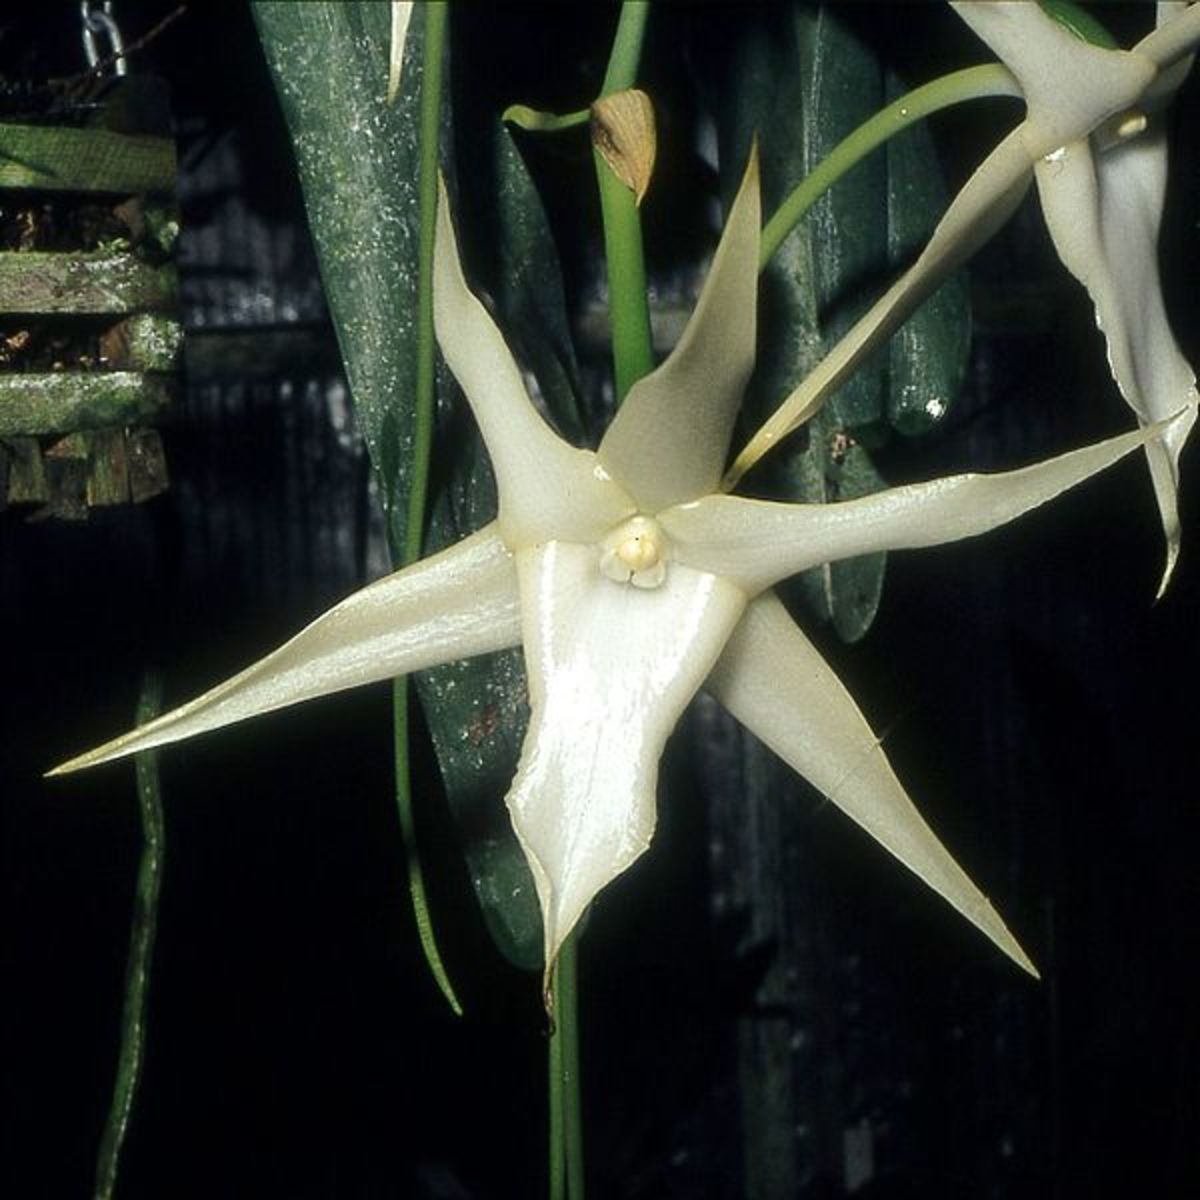 The comet orchid has very long spurs that are pollinated by a hawk-moth with an equally long proboscis.